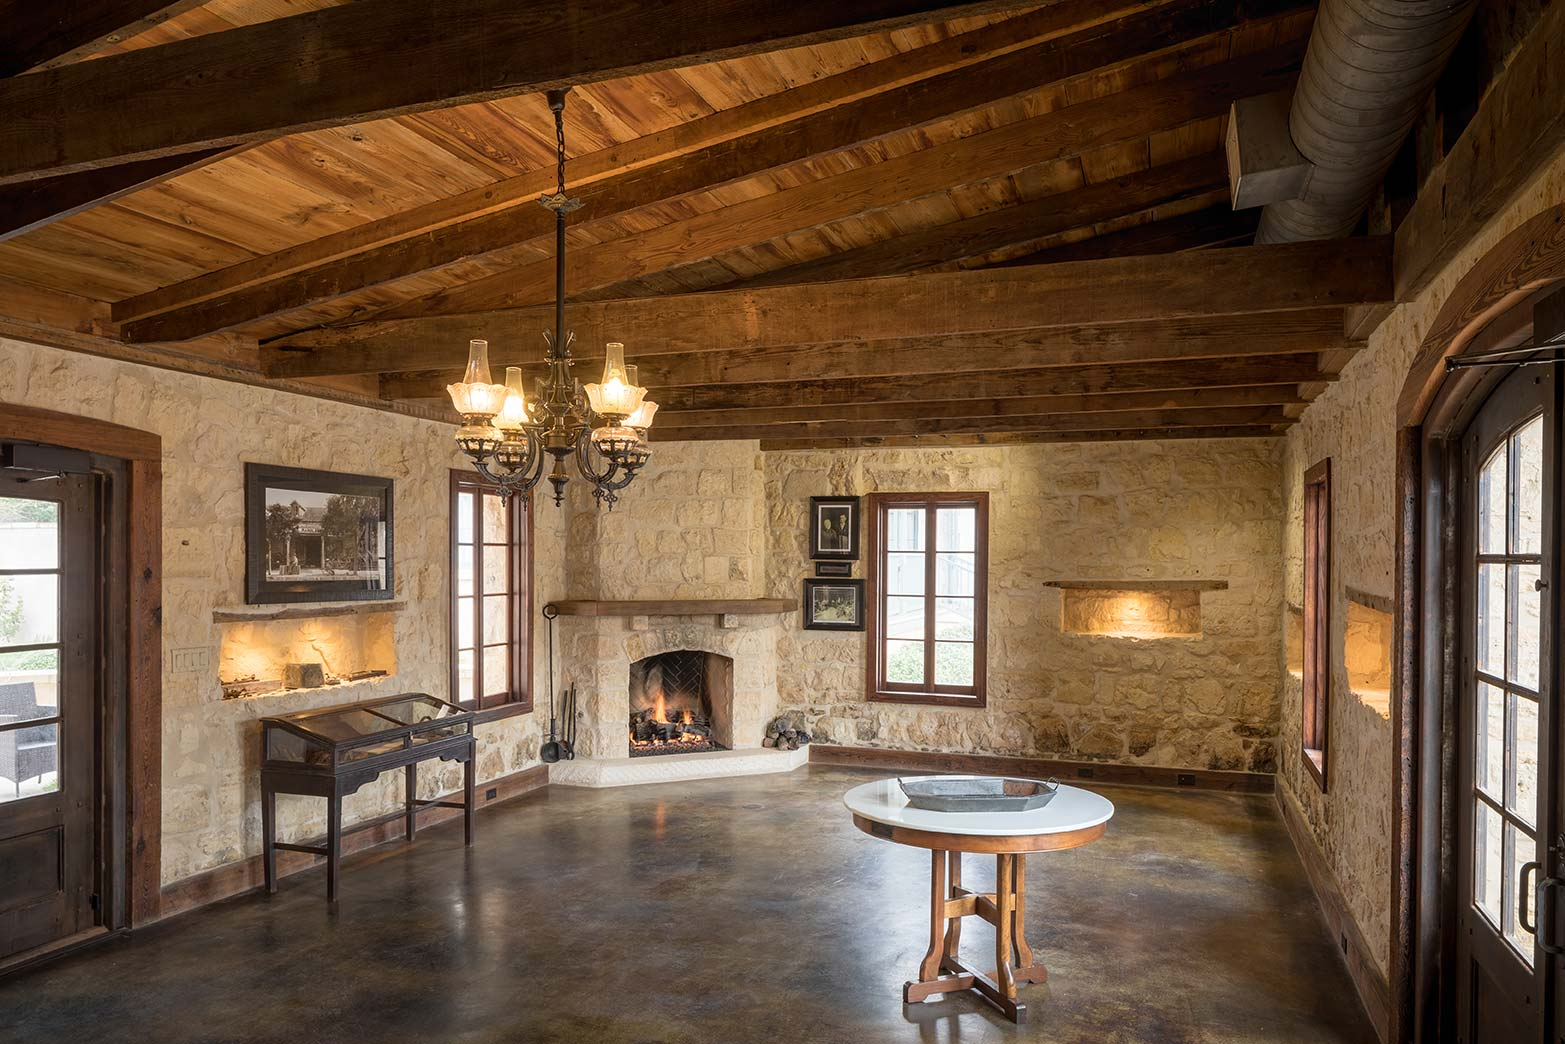 blacksmith-quarters-fredericksburg-realty-texas-commercial-real-estate-for-sale-cabins-fireplace.jpg